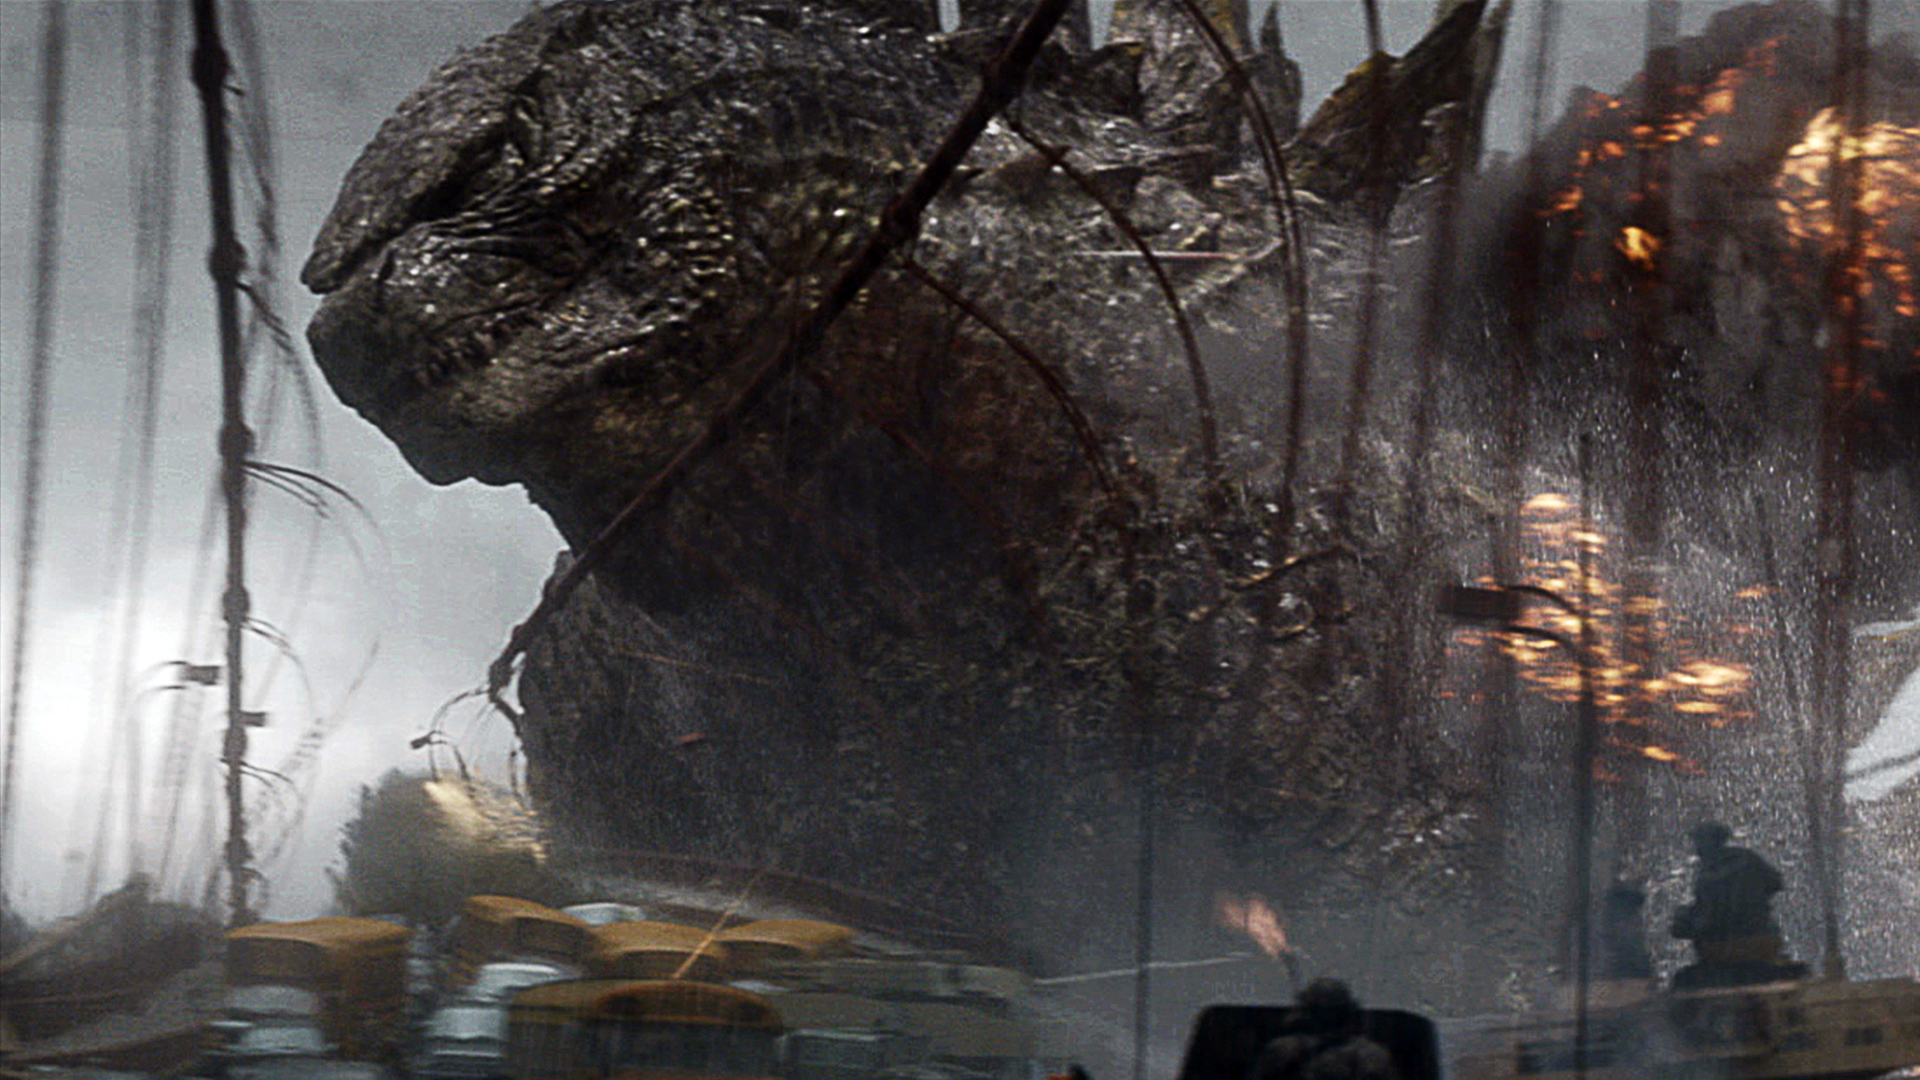 godzilla 2014 movie image hd  1920x1080Godzilla 2014 Wallpaper Roar